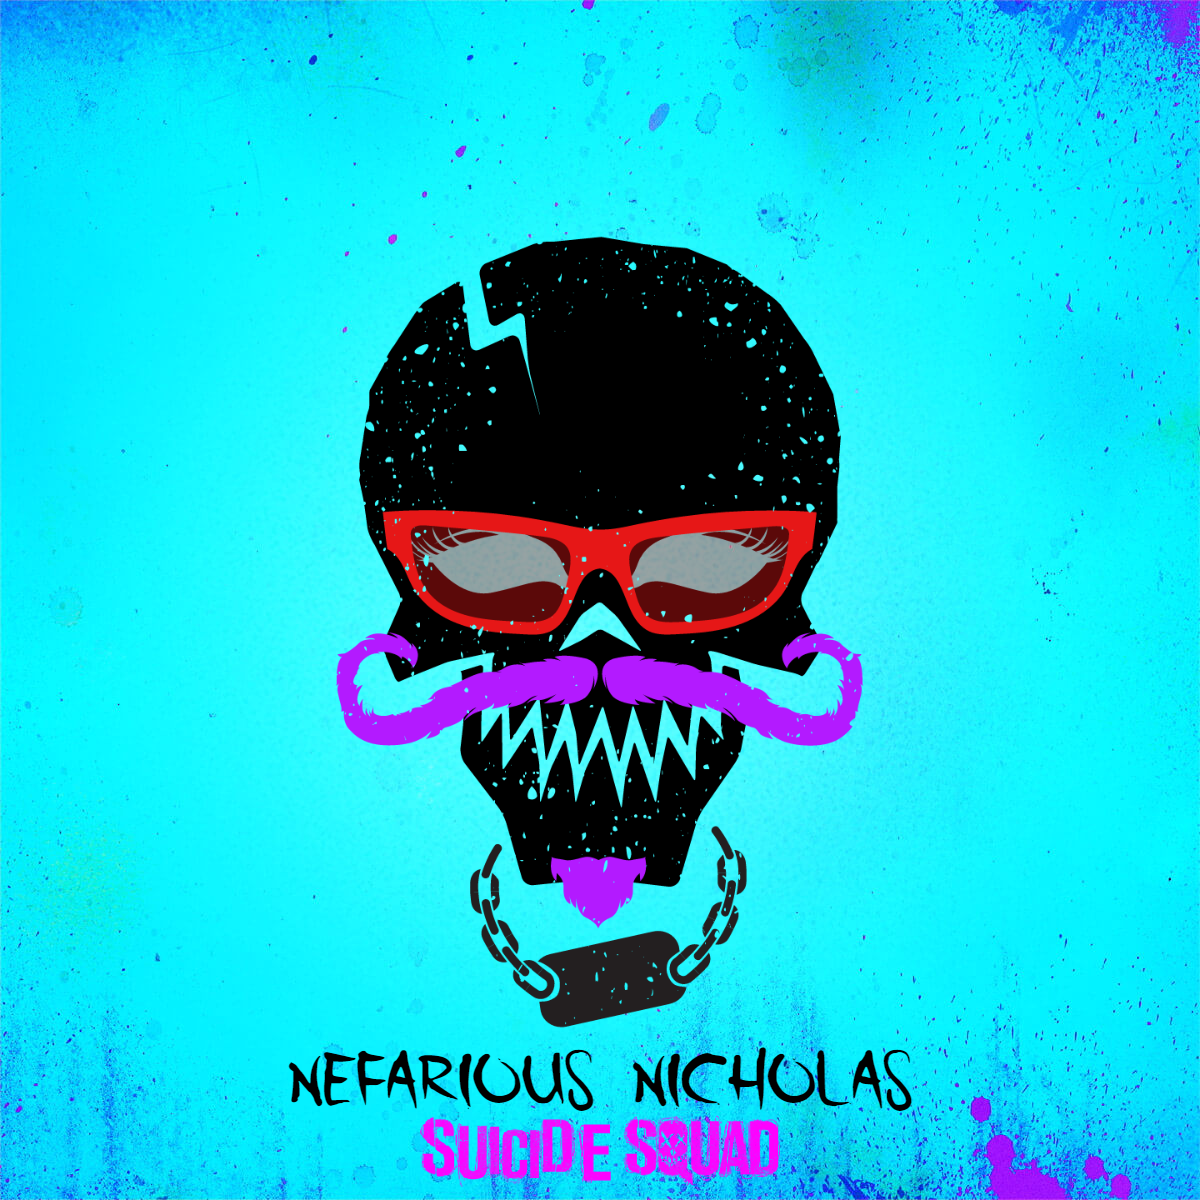 Nefarious Nicholas Suicide Squad Generated avatar